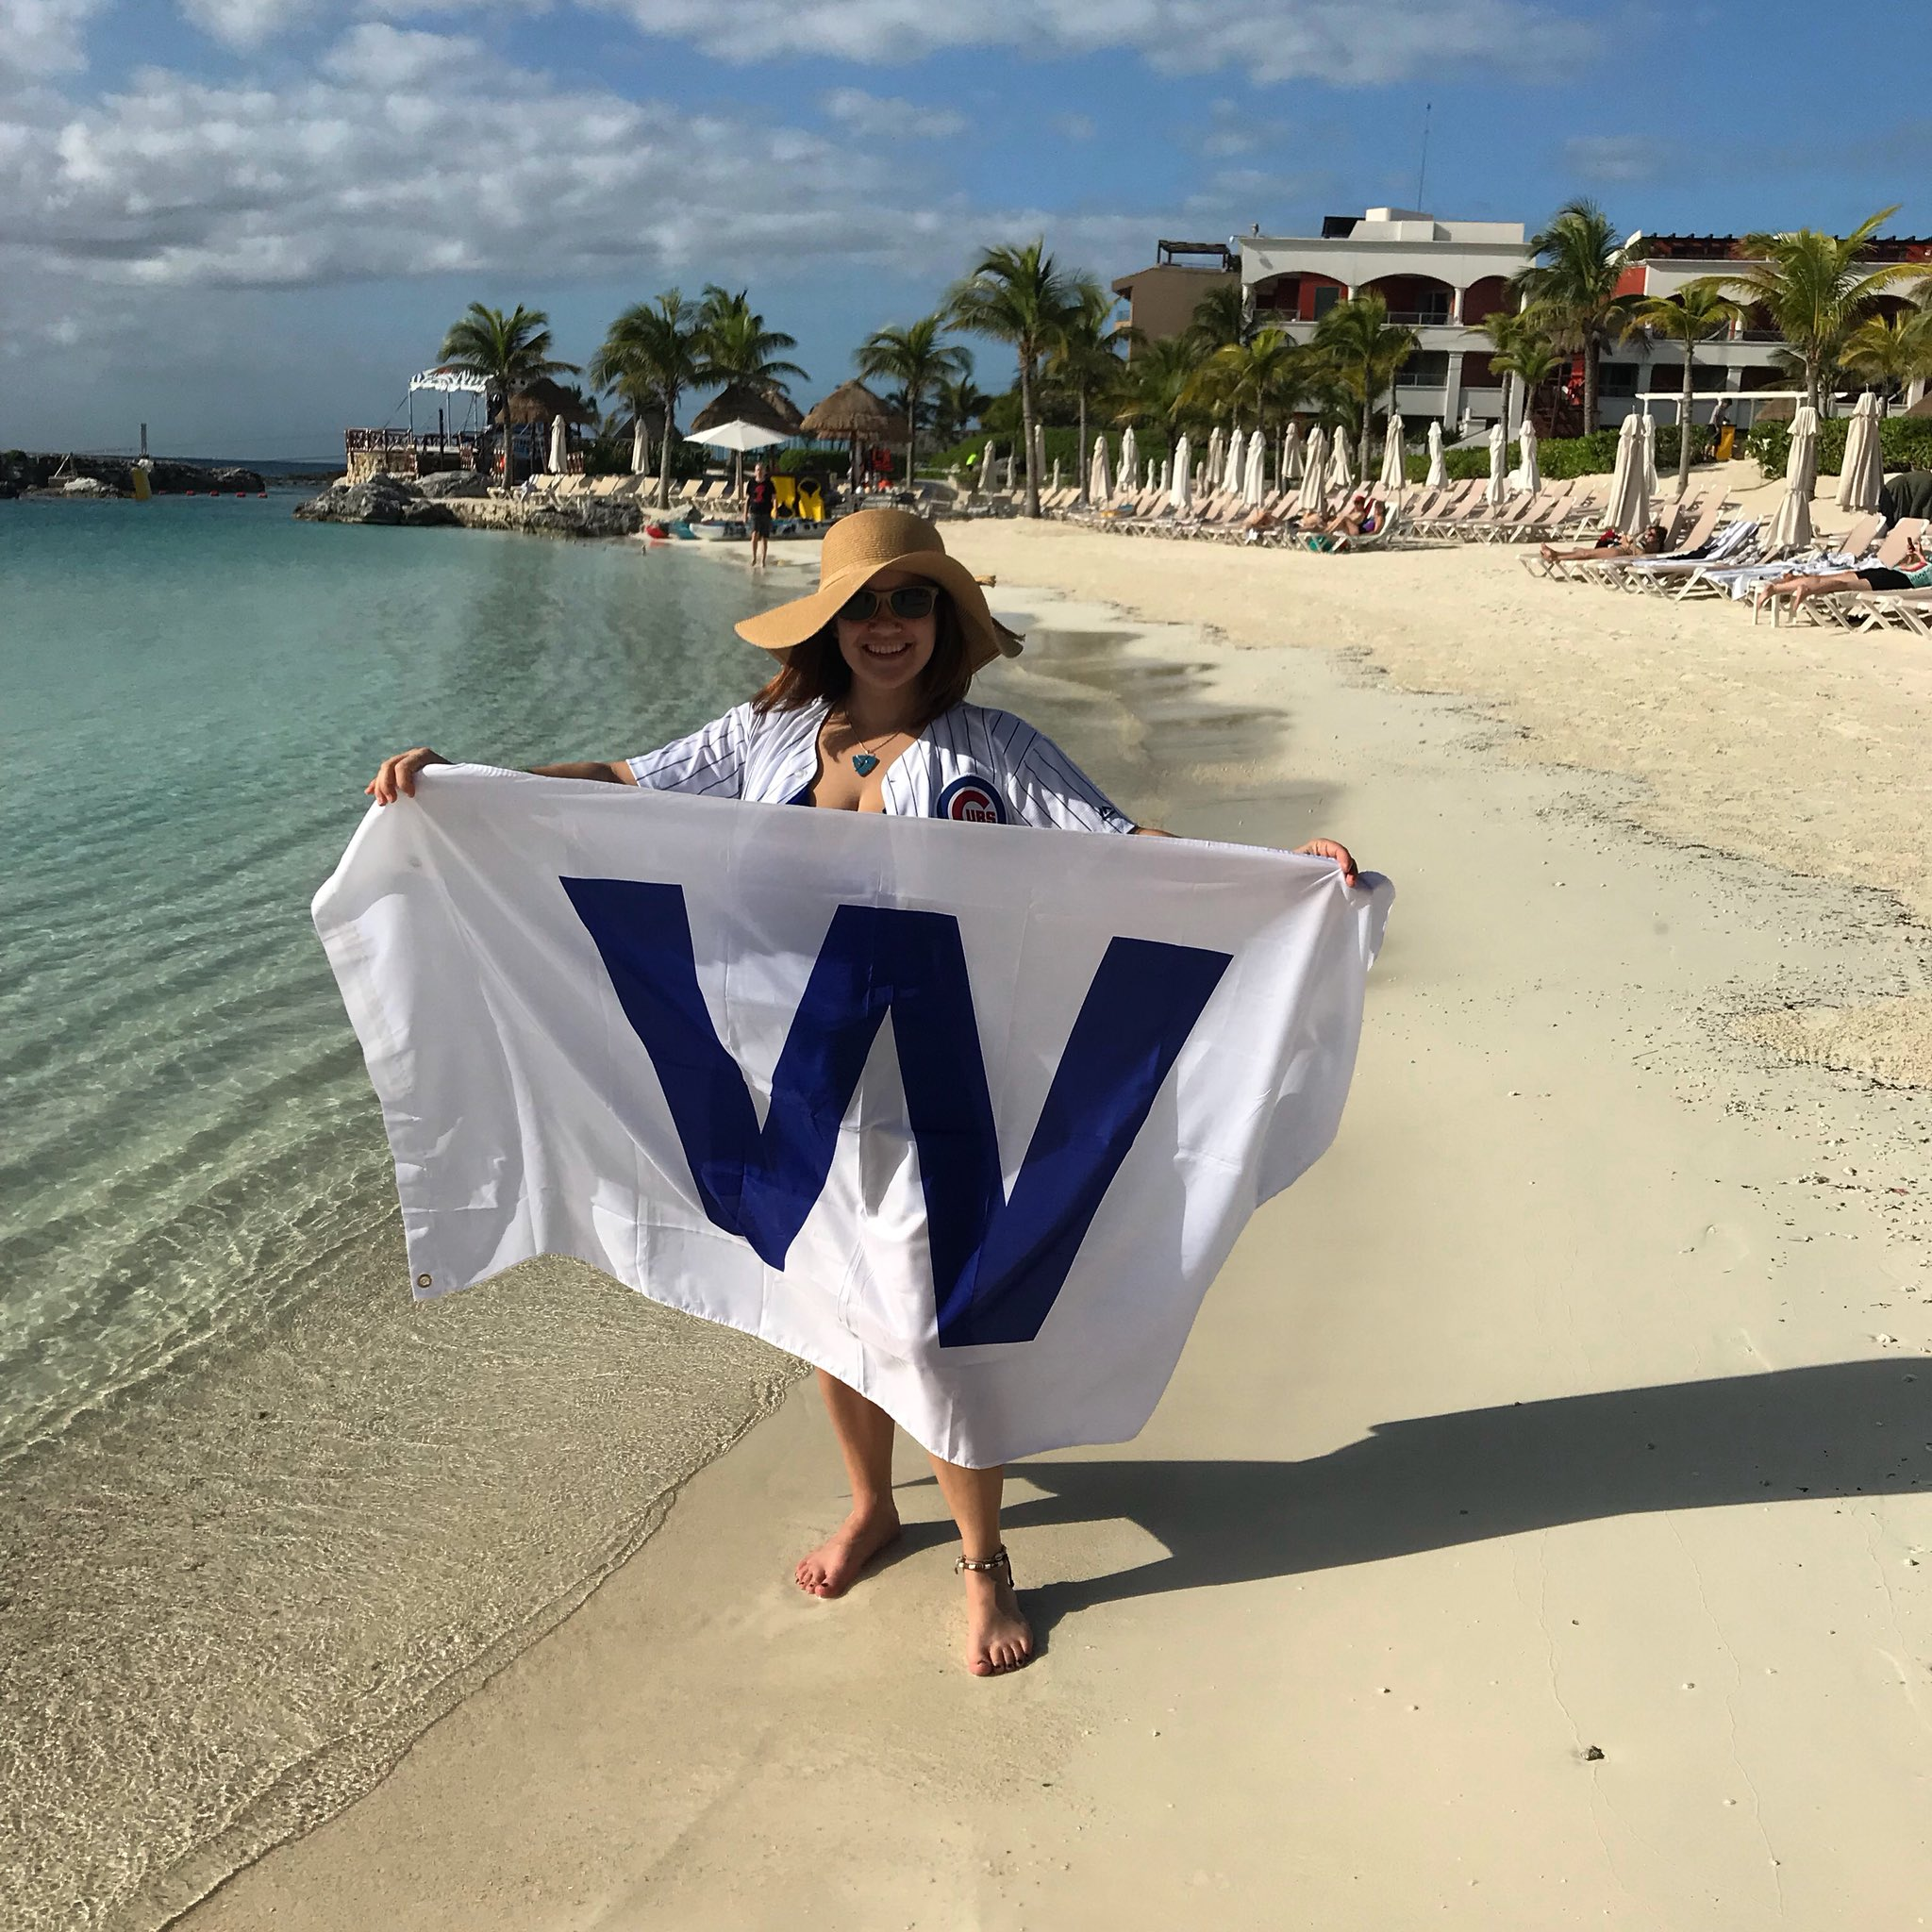 Flying the W in Mexico because it's baseball's turn now! https://t.co/YHFdasNAQm